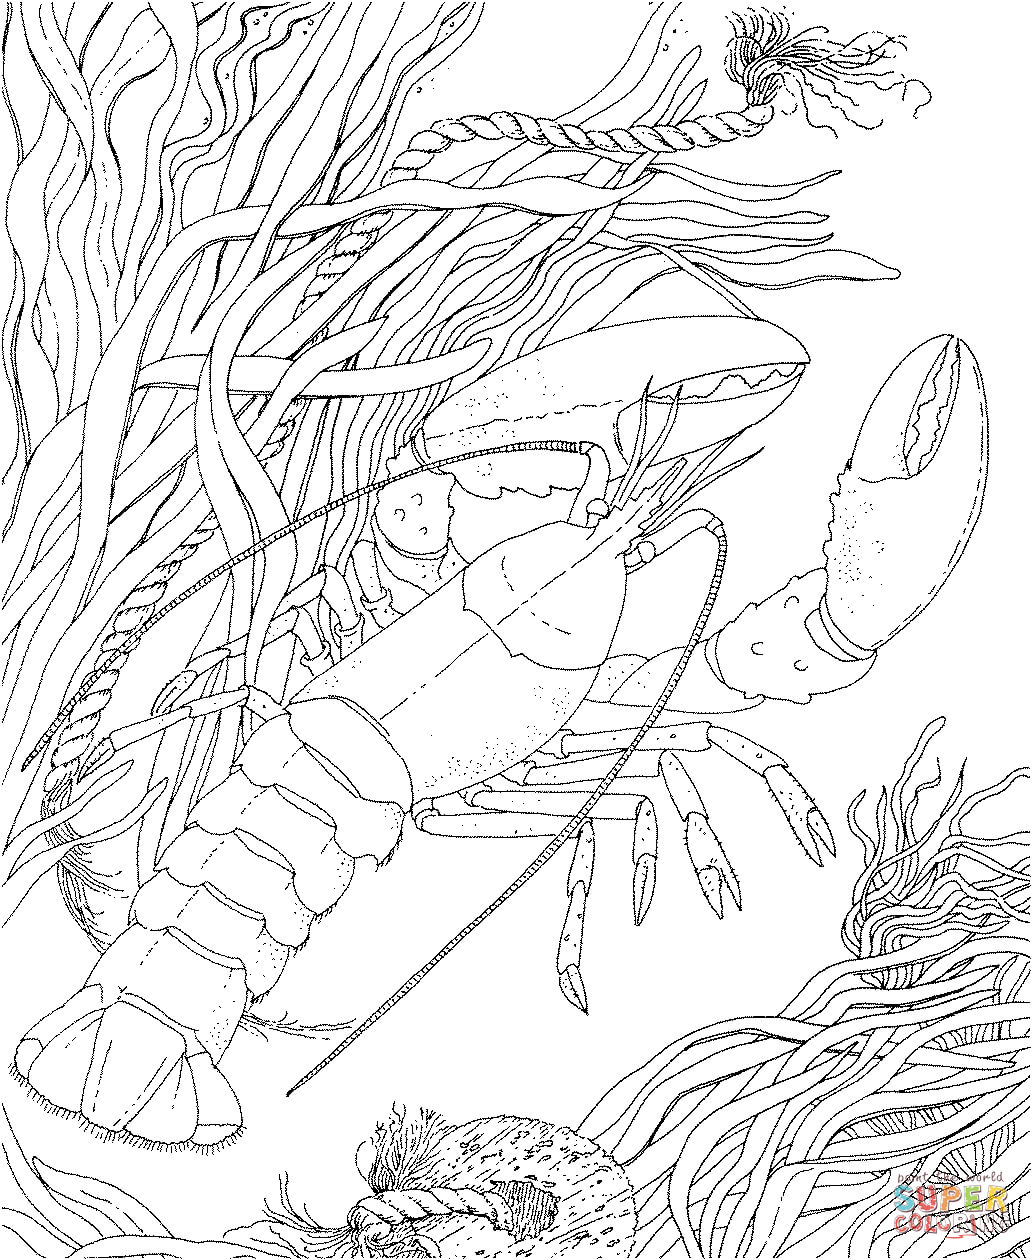 Crawdad Crayfish Coloring Page Free Printable Coloring Pages